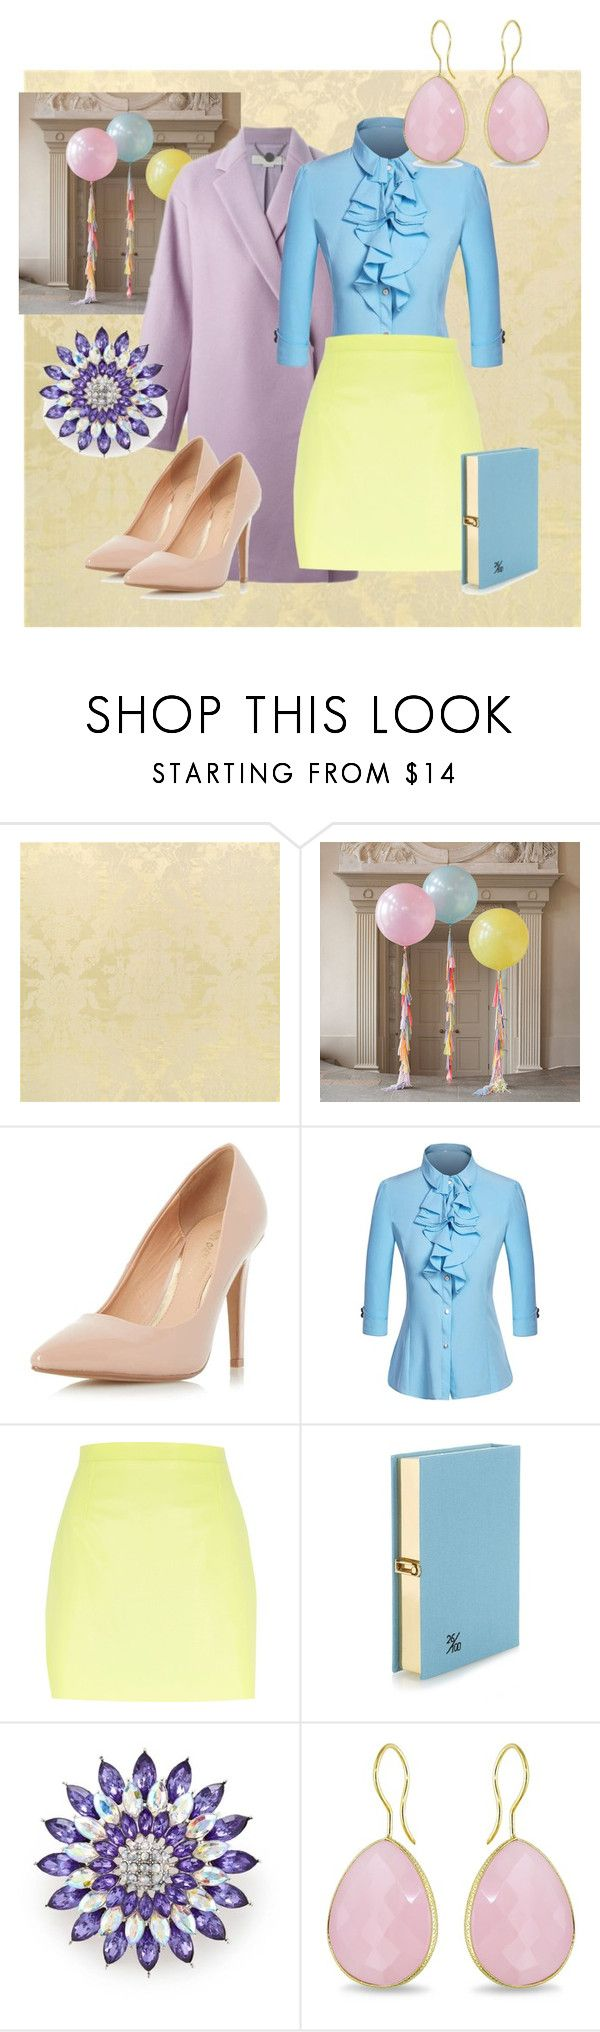 """photoshoot"" by tatianakornienko on Polyvore featuring мода, STELLA McCARTNEY, Dorothy Perkins, River Island, Olympia Le-Tan, Kim Rogers и Ice"